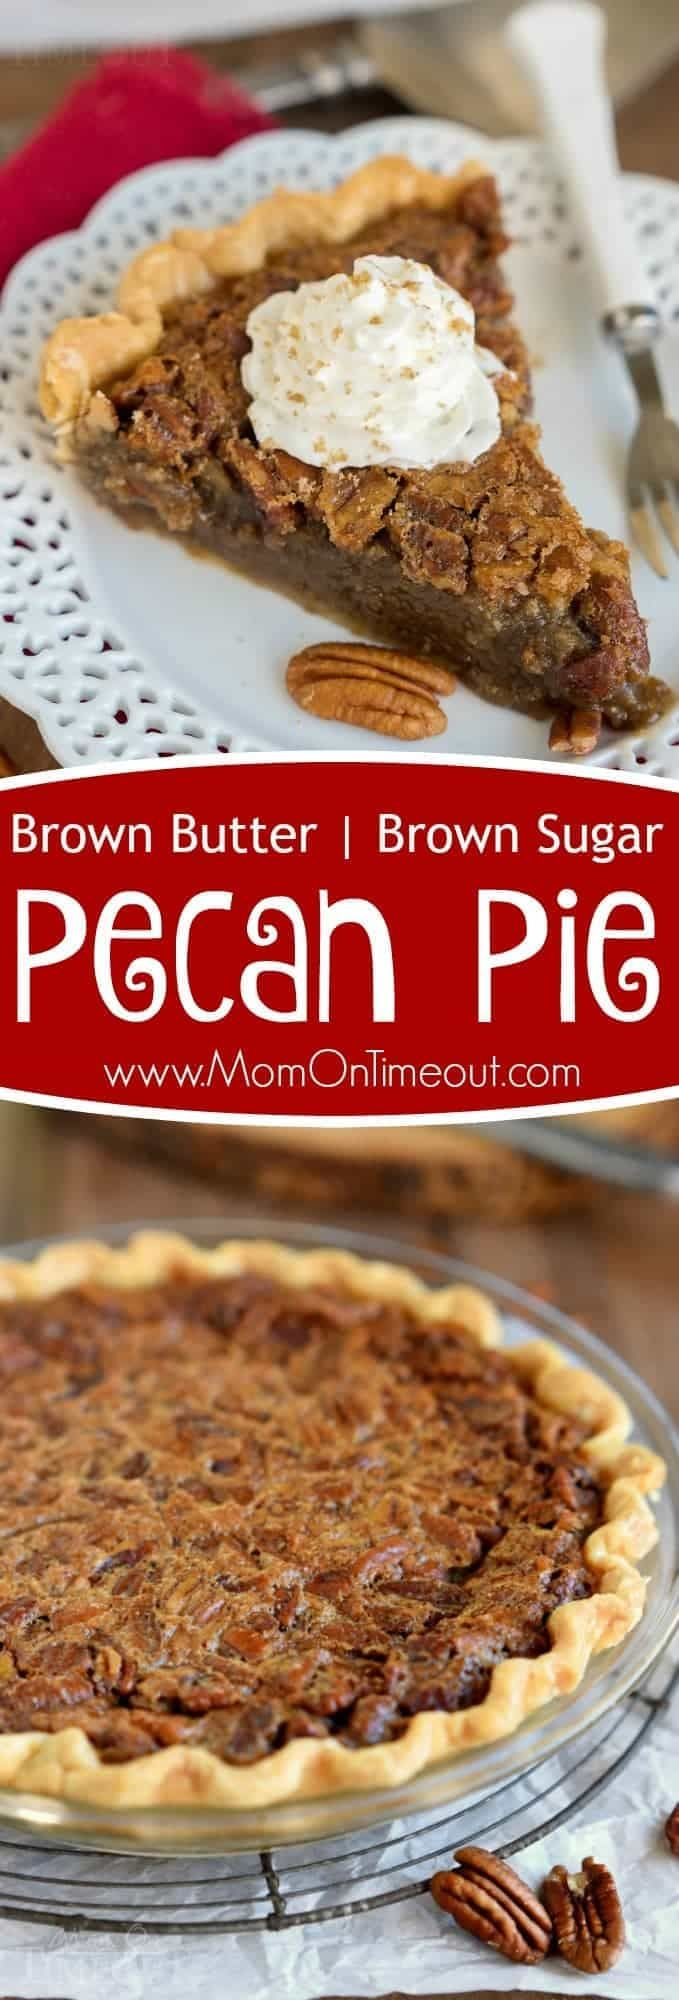 This Brown Butter Brown Sugar Pecan Pie is the perfect addition to your holiday table this year! This recipe is SO easy you're going to want to make two - one for you and one for a friend! // Mom On Timeout #pecan #pie #recipe #Thanksgiving #Christmas #desserts #desserttable #dessertrecipes #pierecipes